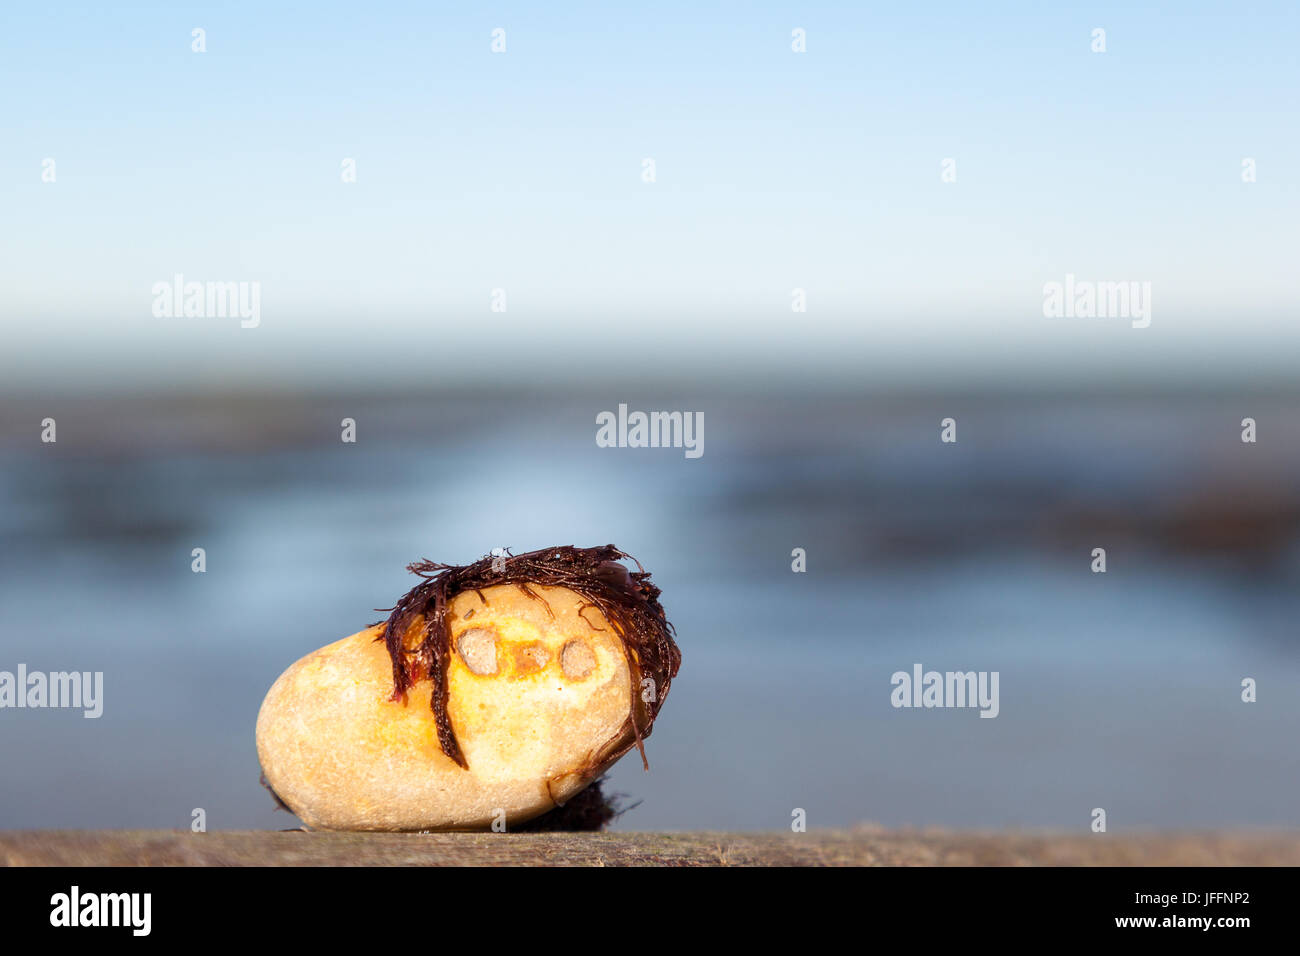 Rock with a humanlike face on beach - Stock Image